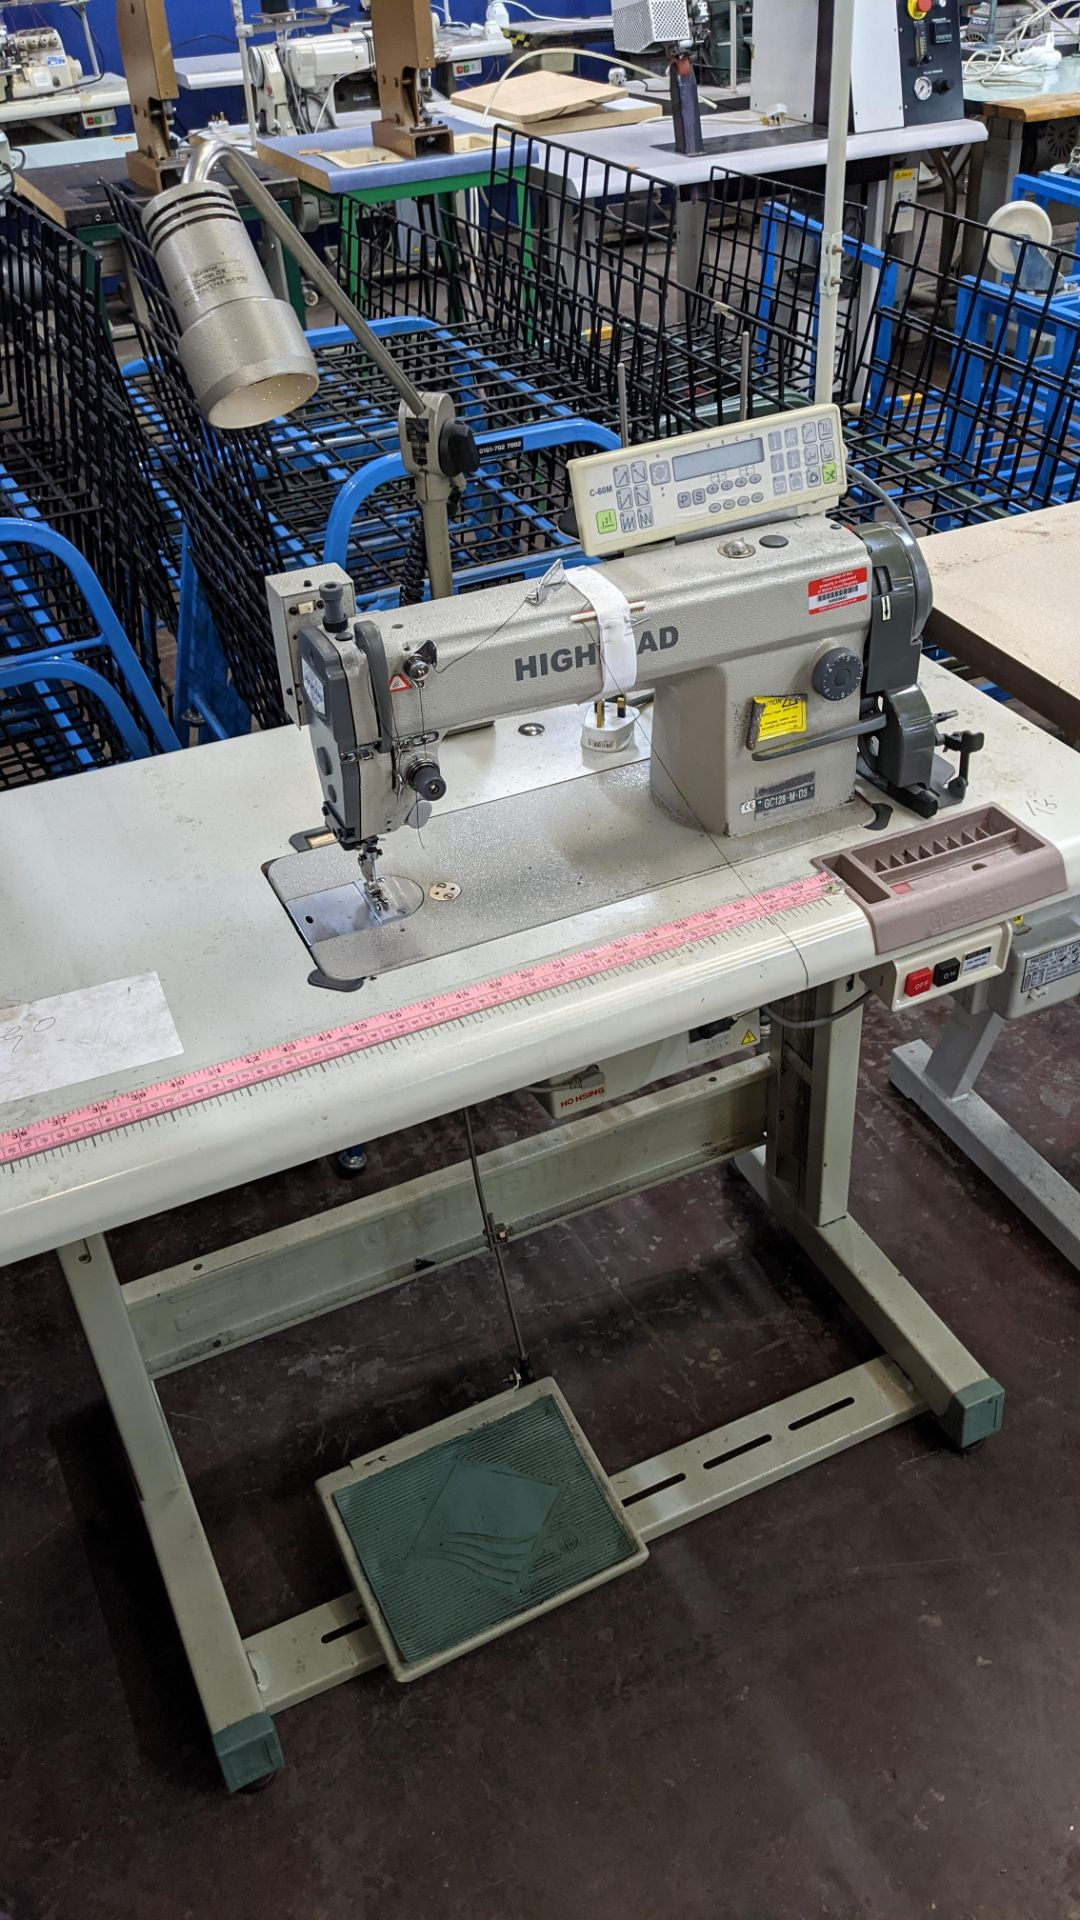 Highlead model GC128-M-D3 sewing machine with model C-60M digital controller - Image 18 of 18